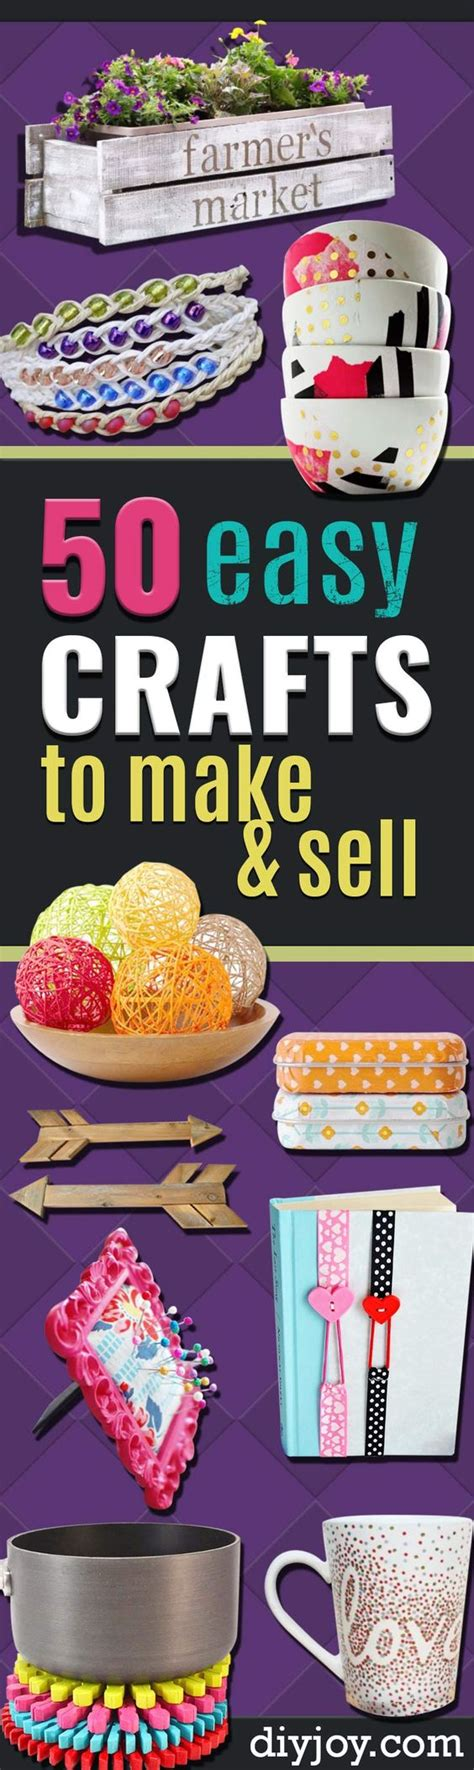 easy craft ideas for to sell 50 easy crafts to make and sell make and sell